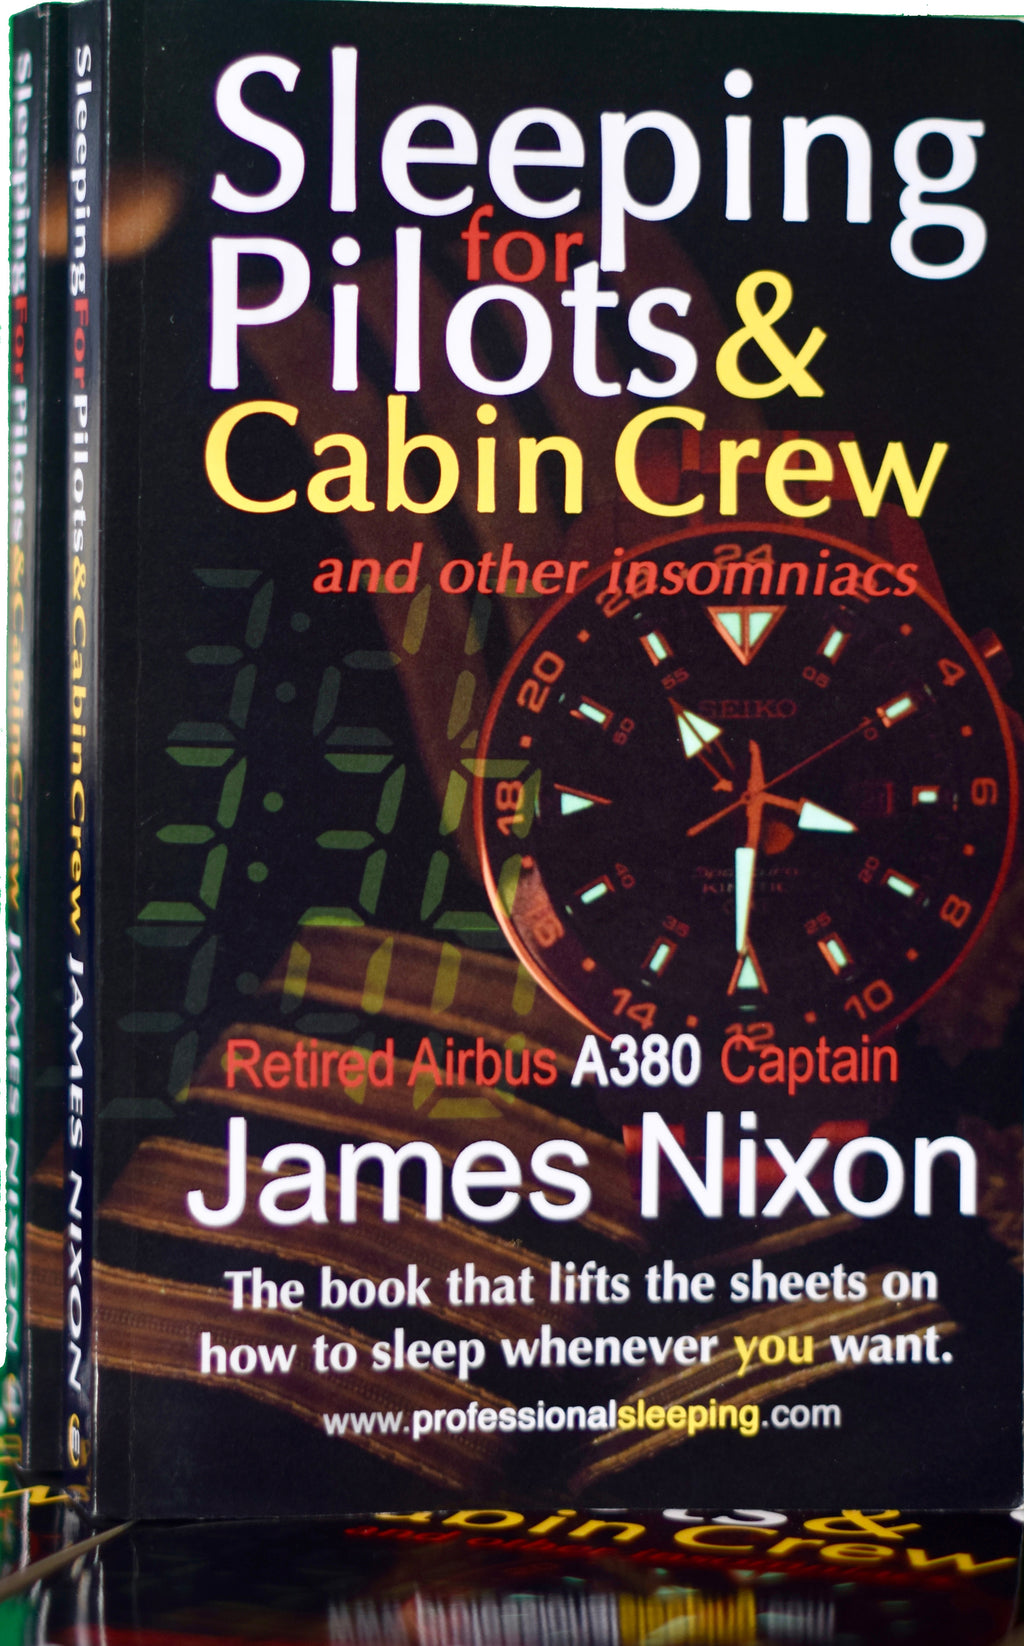 Sleeping For Pilots & Cabin Crew (And Other Insomniacs)